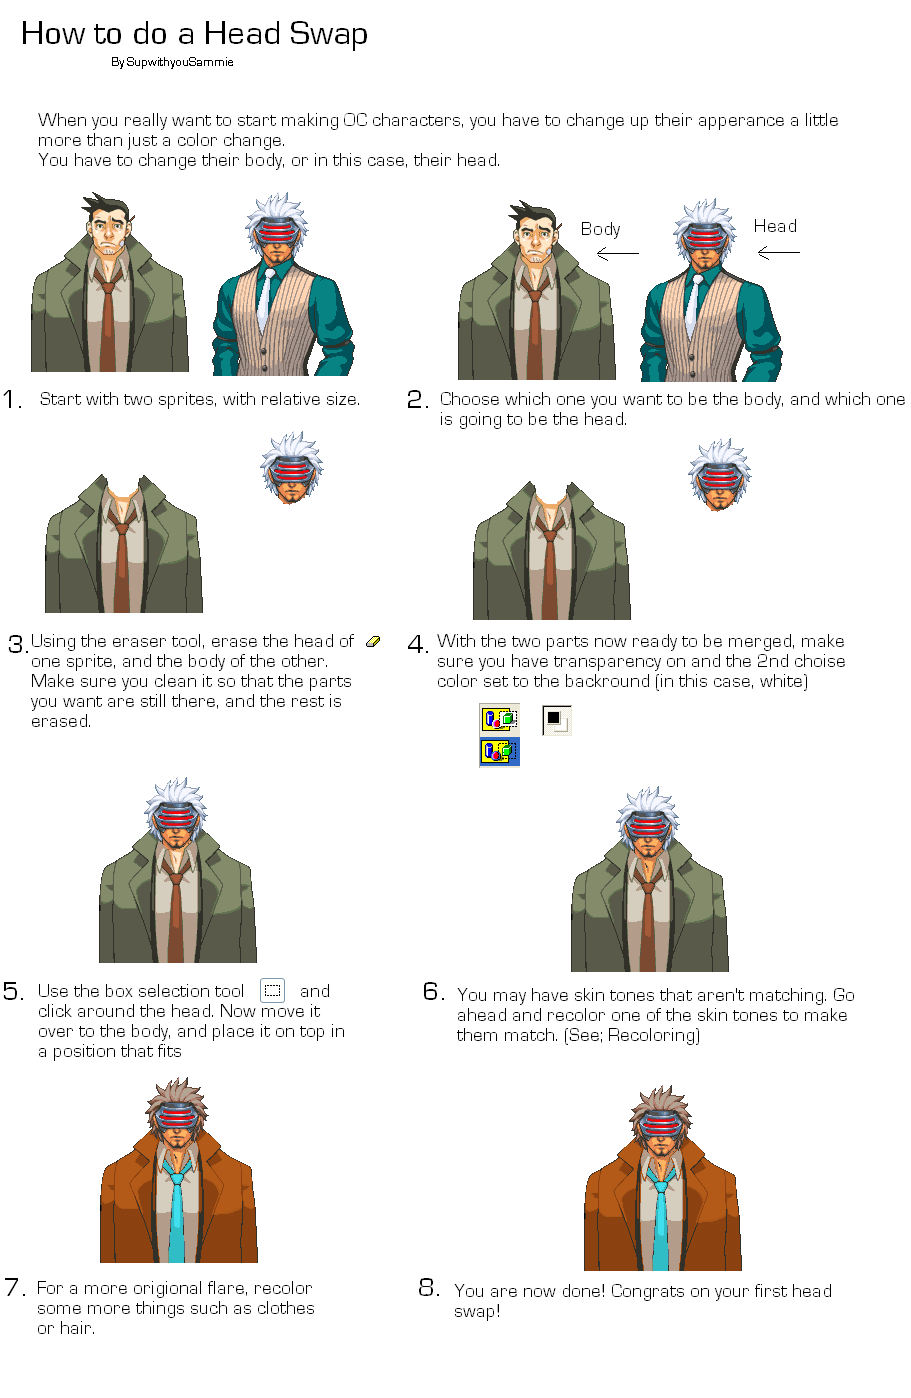 Helpful Tutorials and Hints for spriting. [Update 3/6] HeadSwap